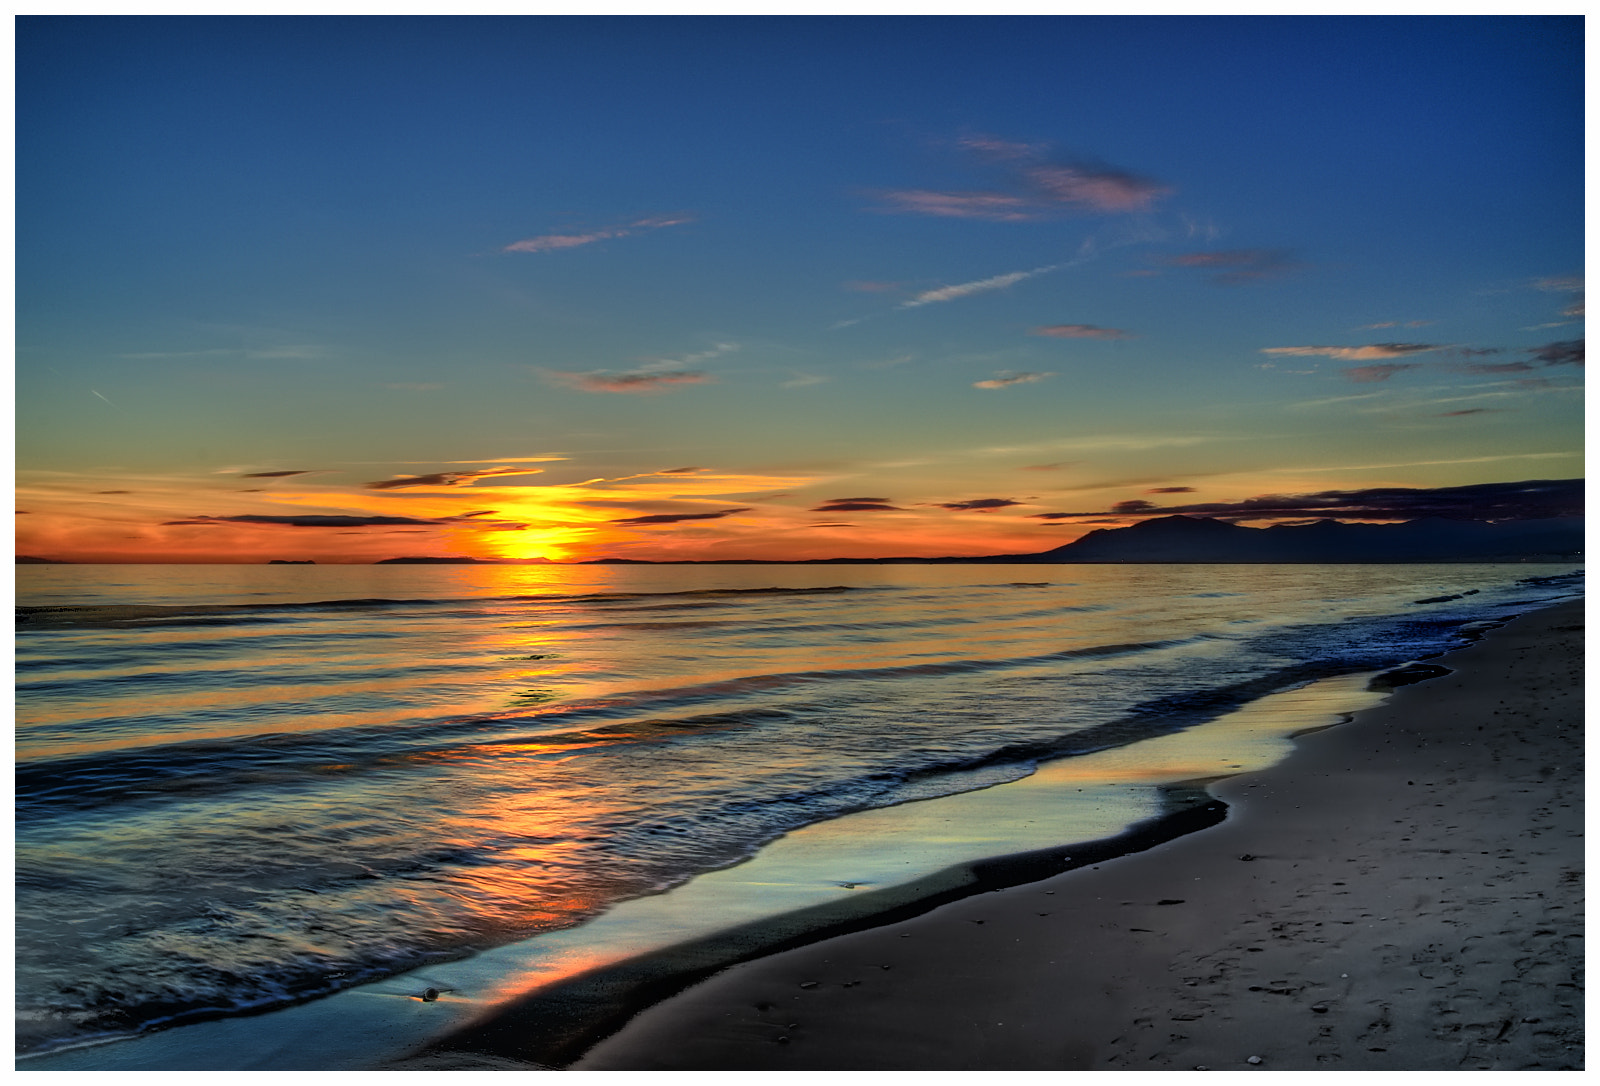 Photograph Sunset Nikki Beach Spain HDR by ---ROB---  PHOTOGRAPHY on 500px